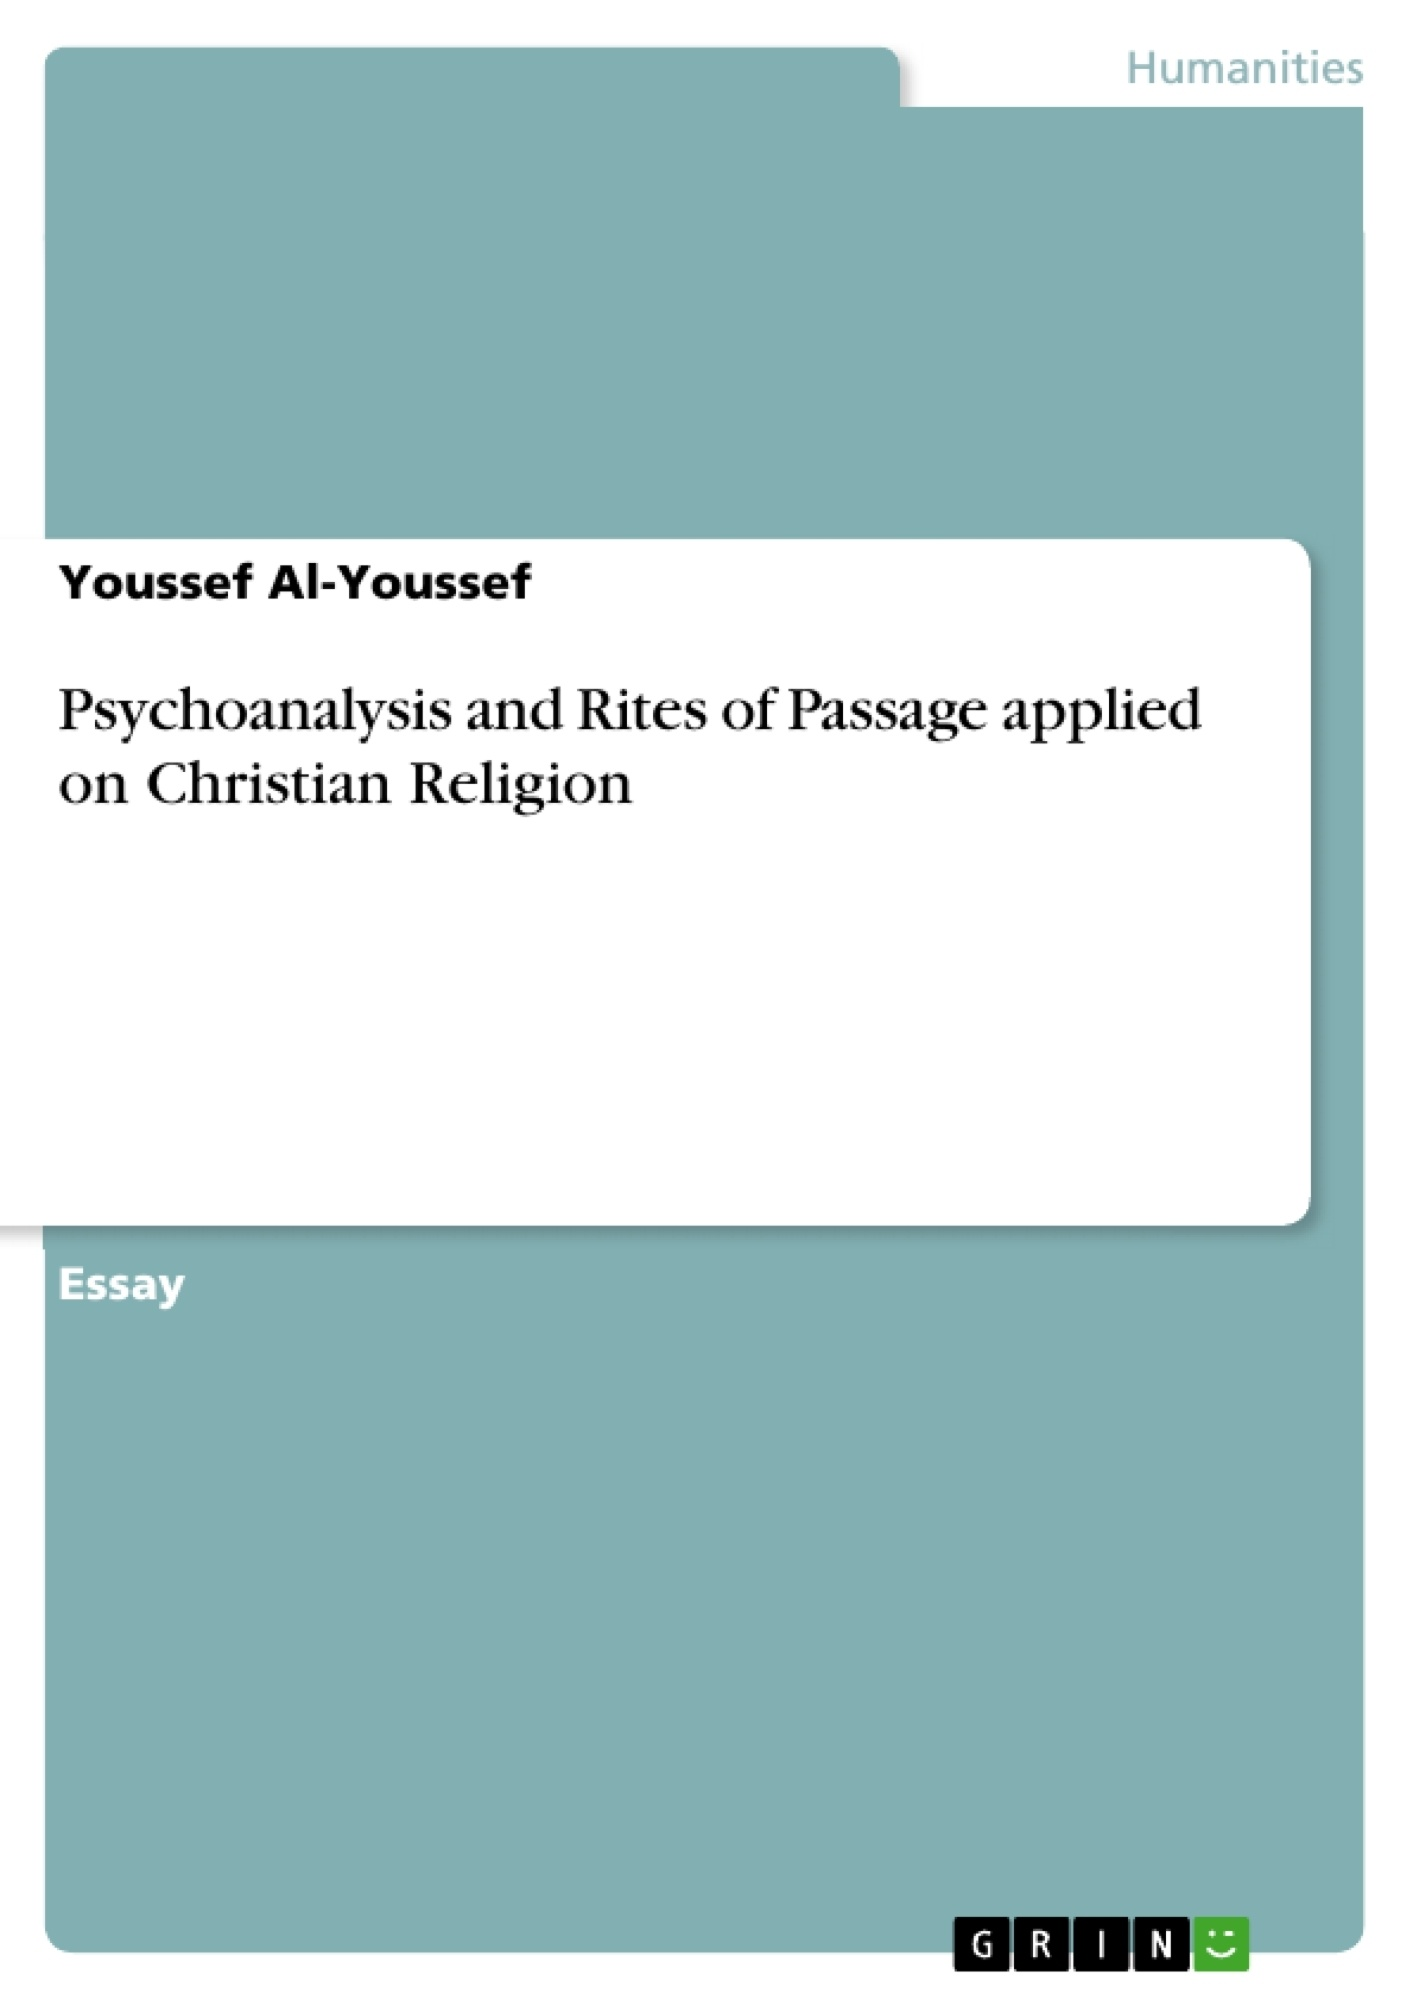 Title: Psychoanalysis and Rites of Passage applied on Christian Religion